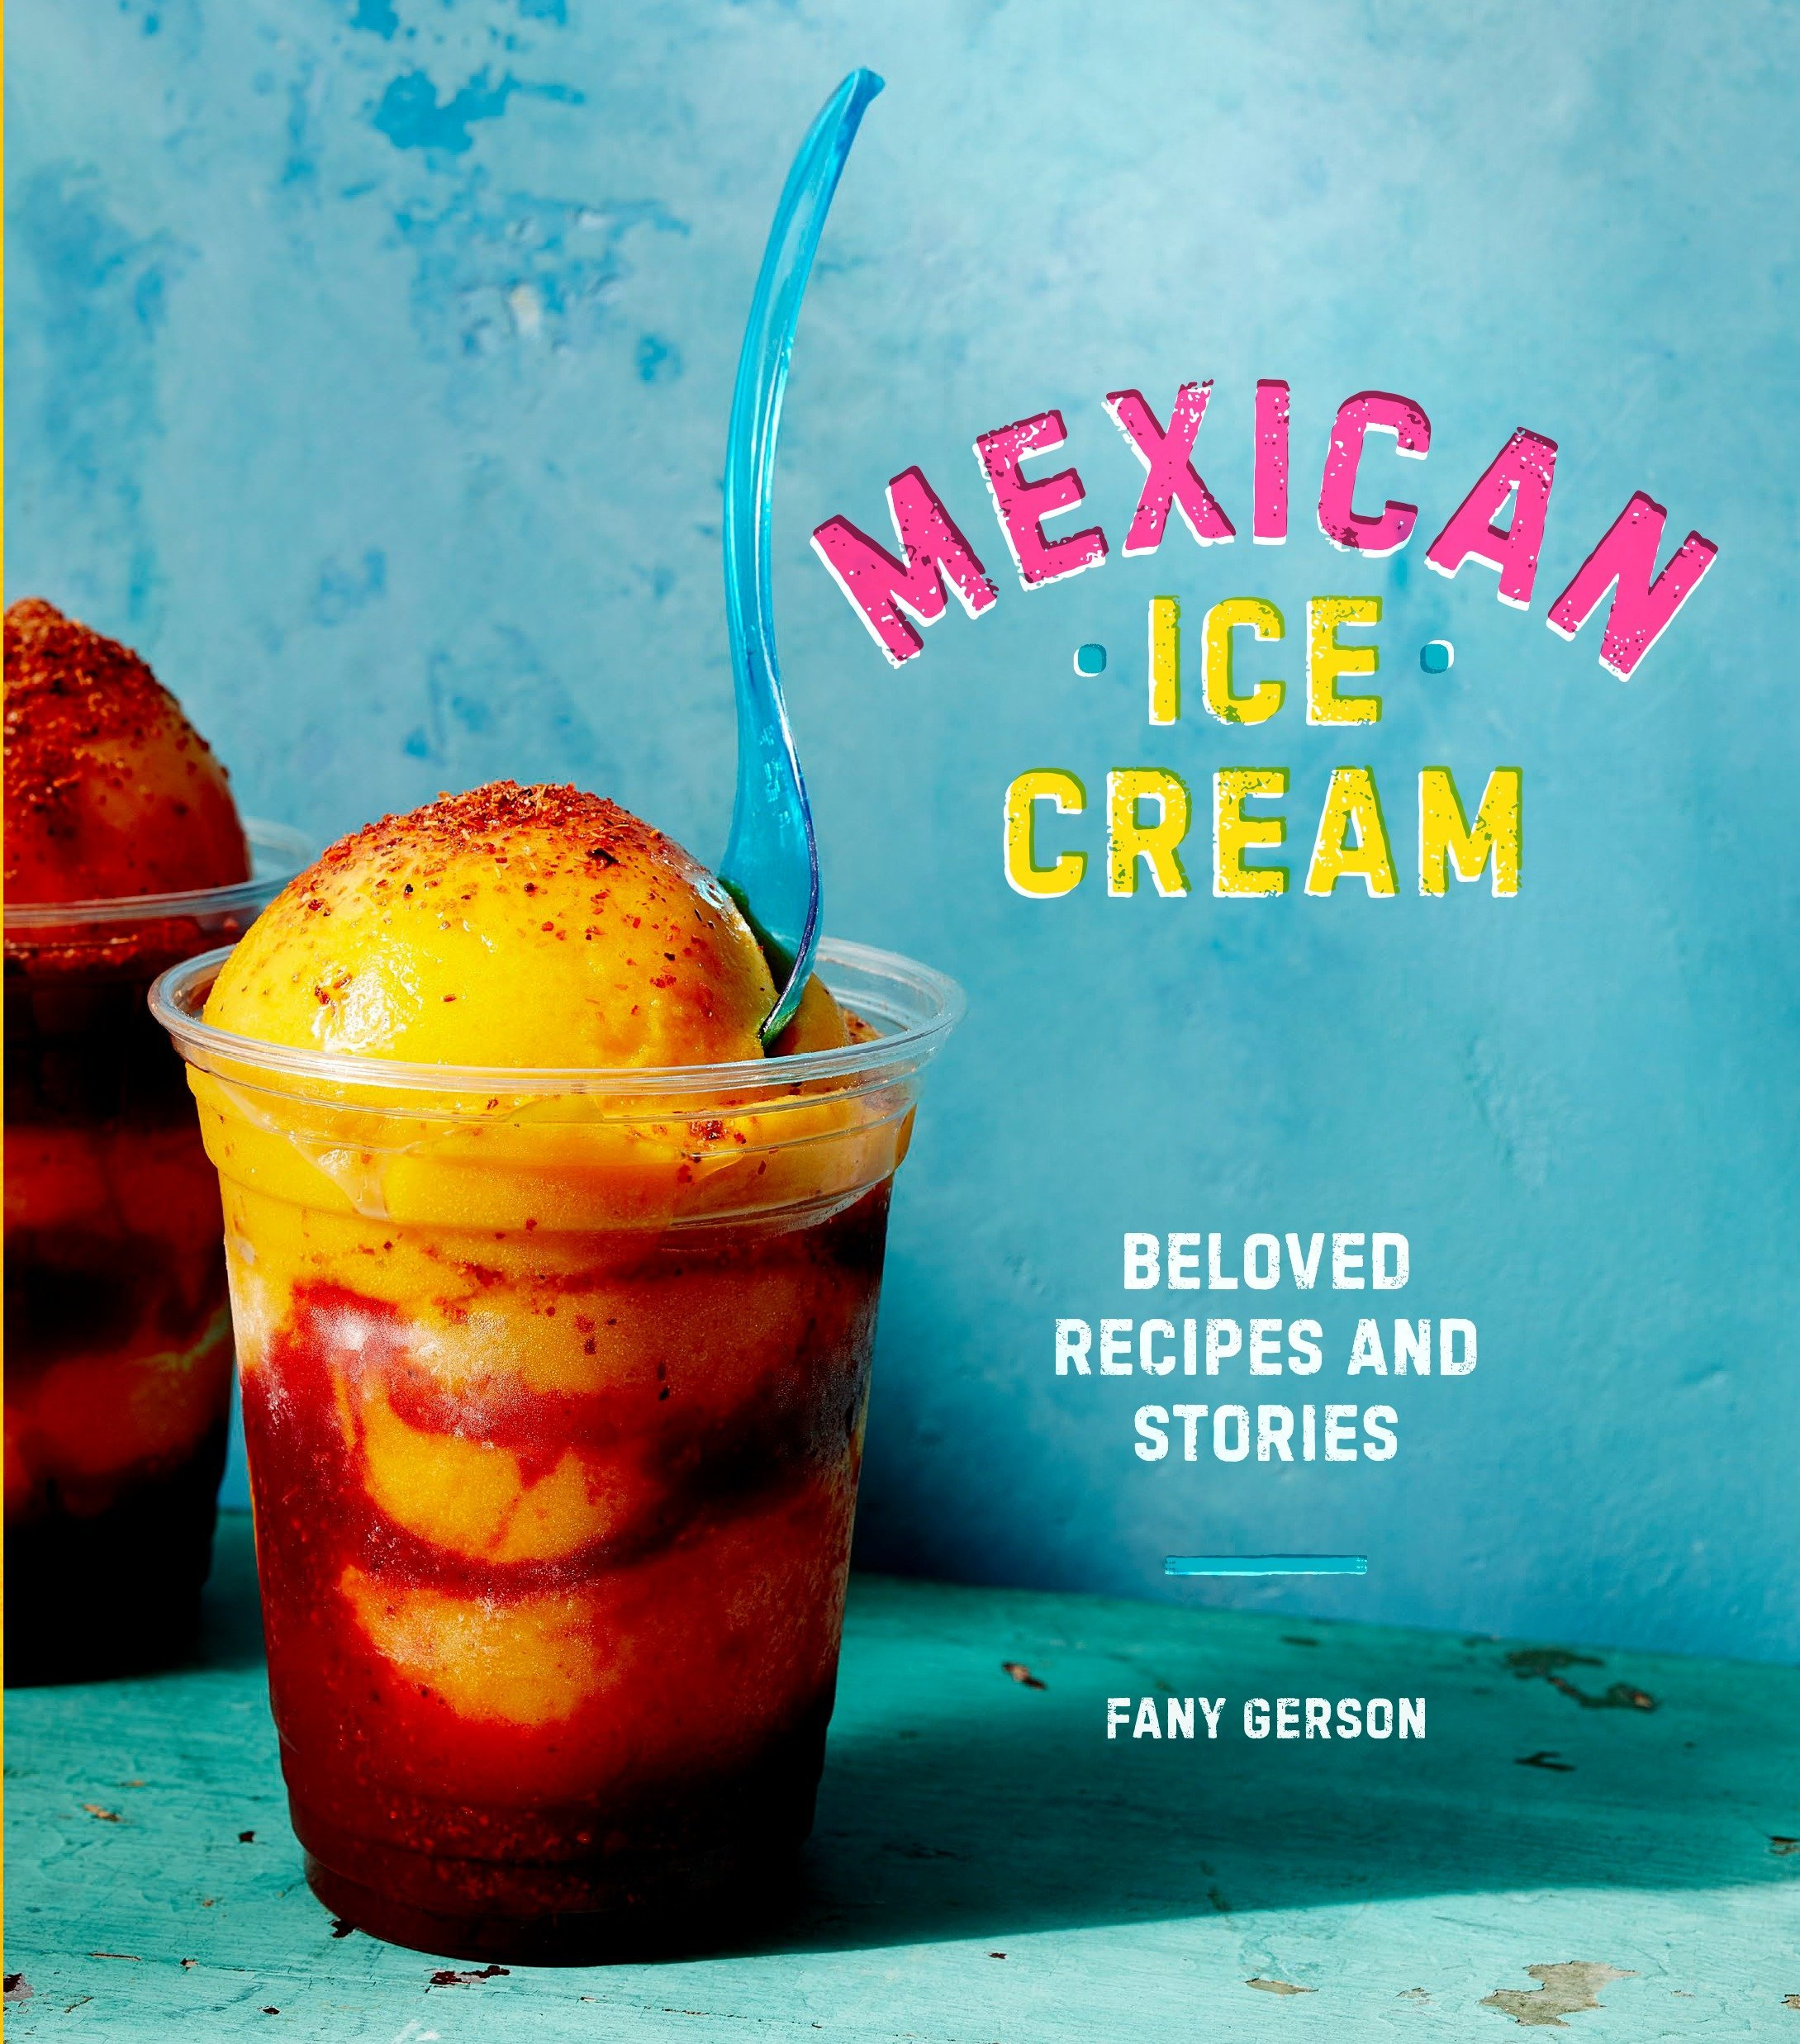 Mexican Ice Cream: Beloved Recipes and Stories: Amazon.es: Fany Gerson: Libros en idiomas extranjeros